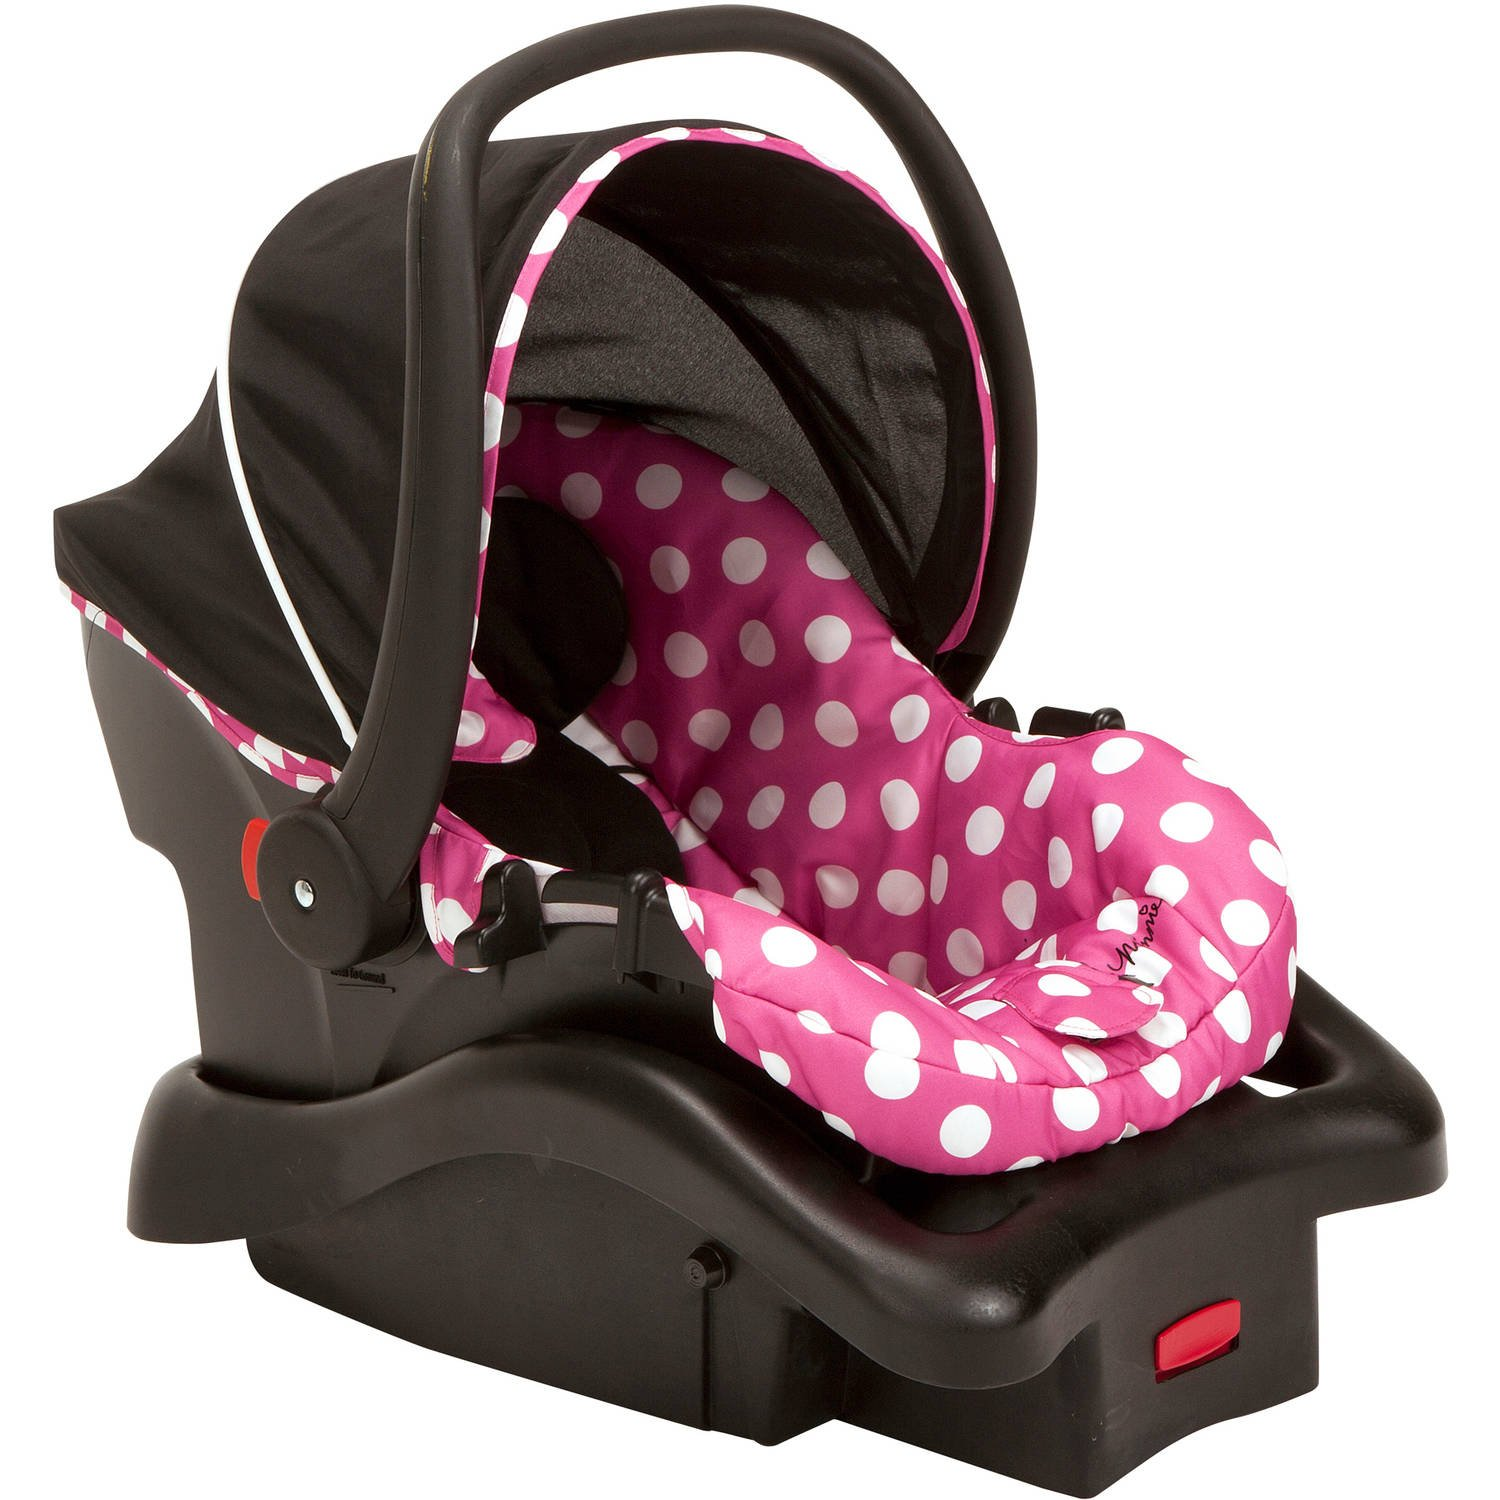 Amazon.com : Disney Minnie Mouse Baby Gear Stroller Travel System Bundle Collection : Baby